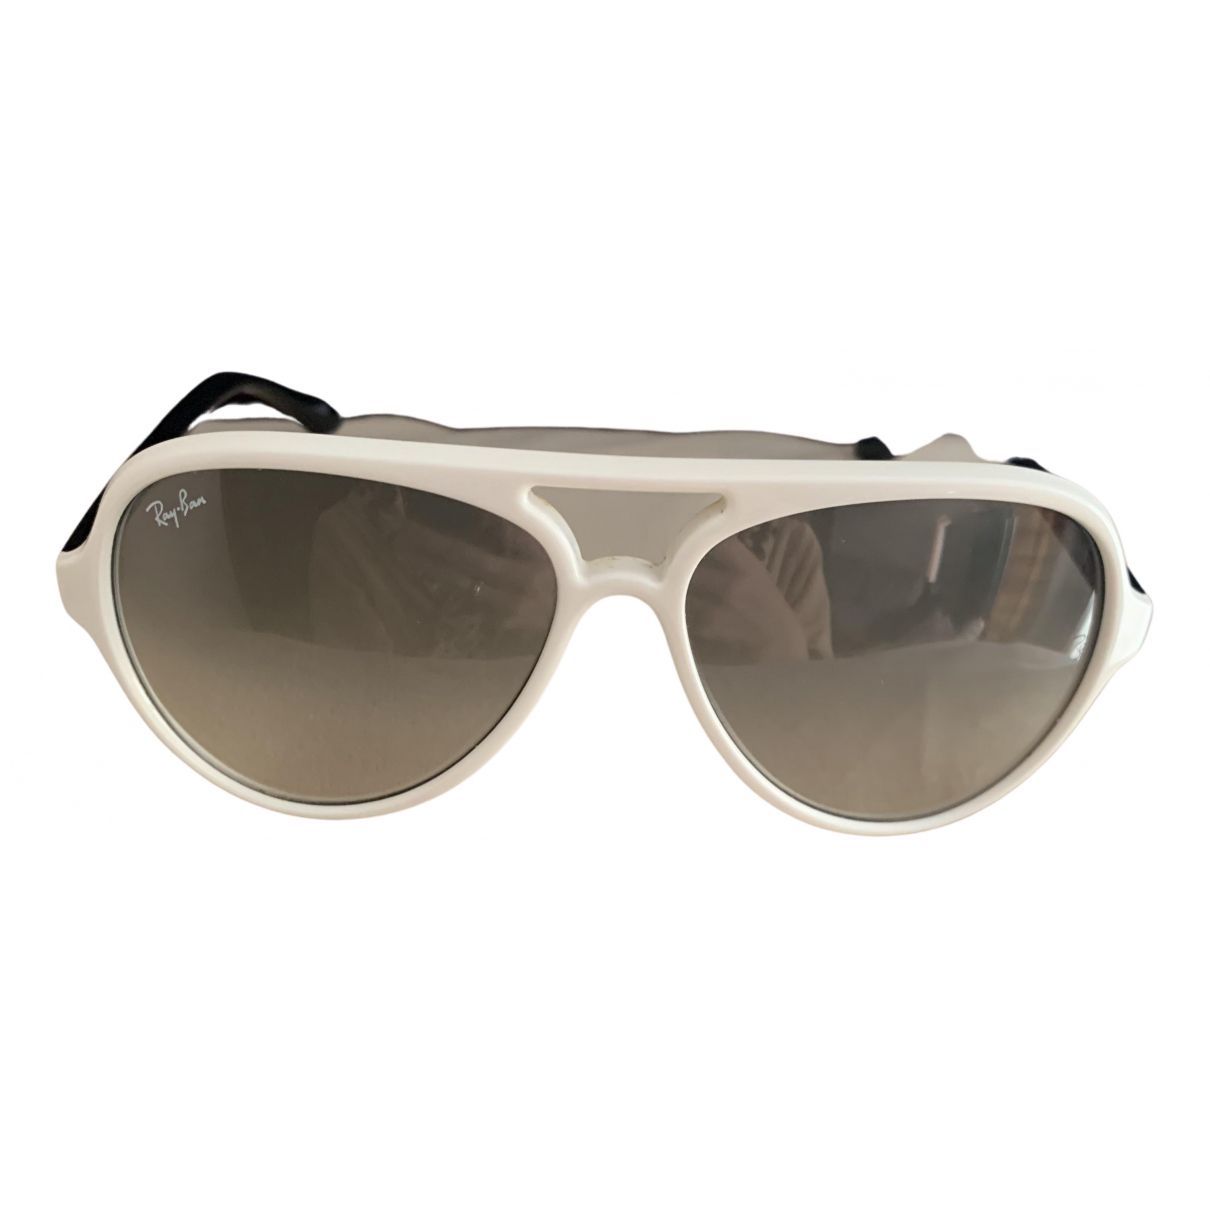 Ray-ban Aviator White Sunglasses for Women N